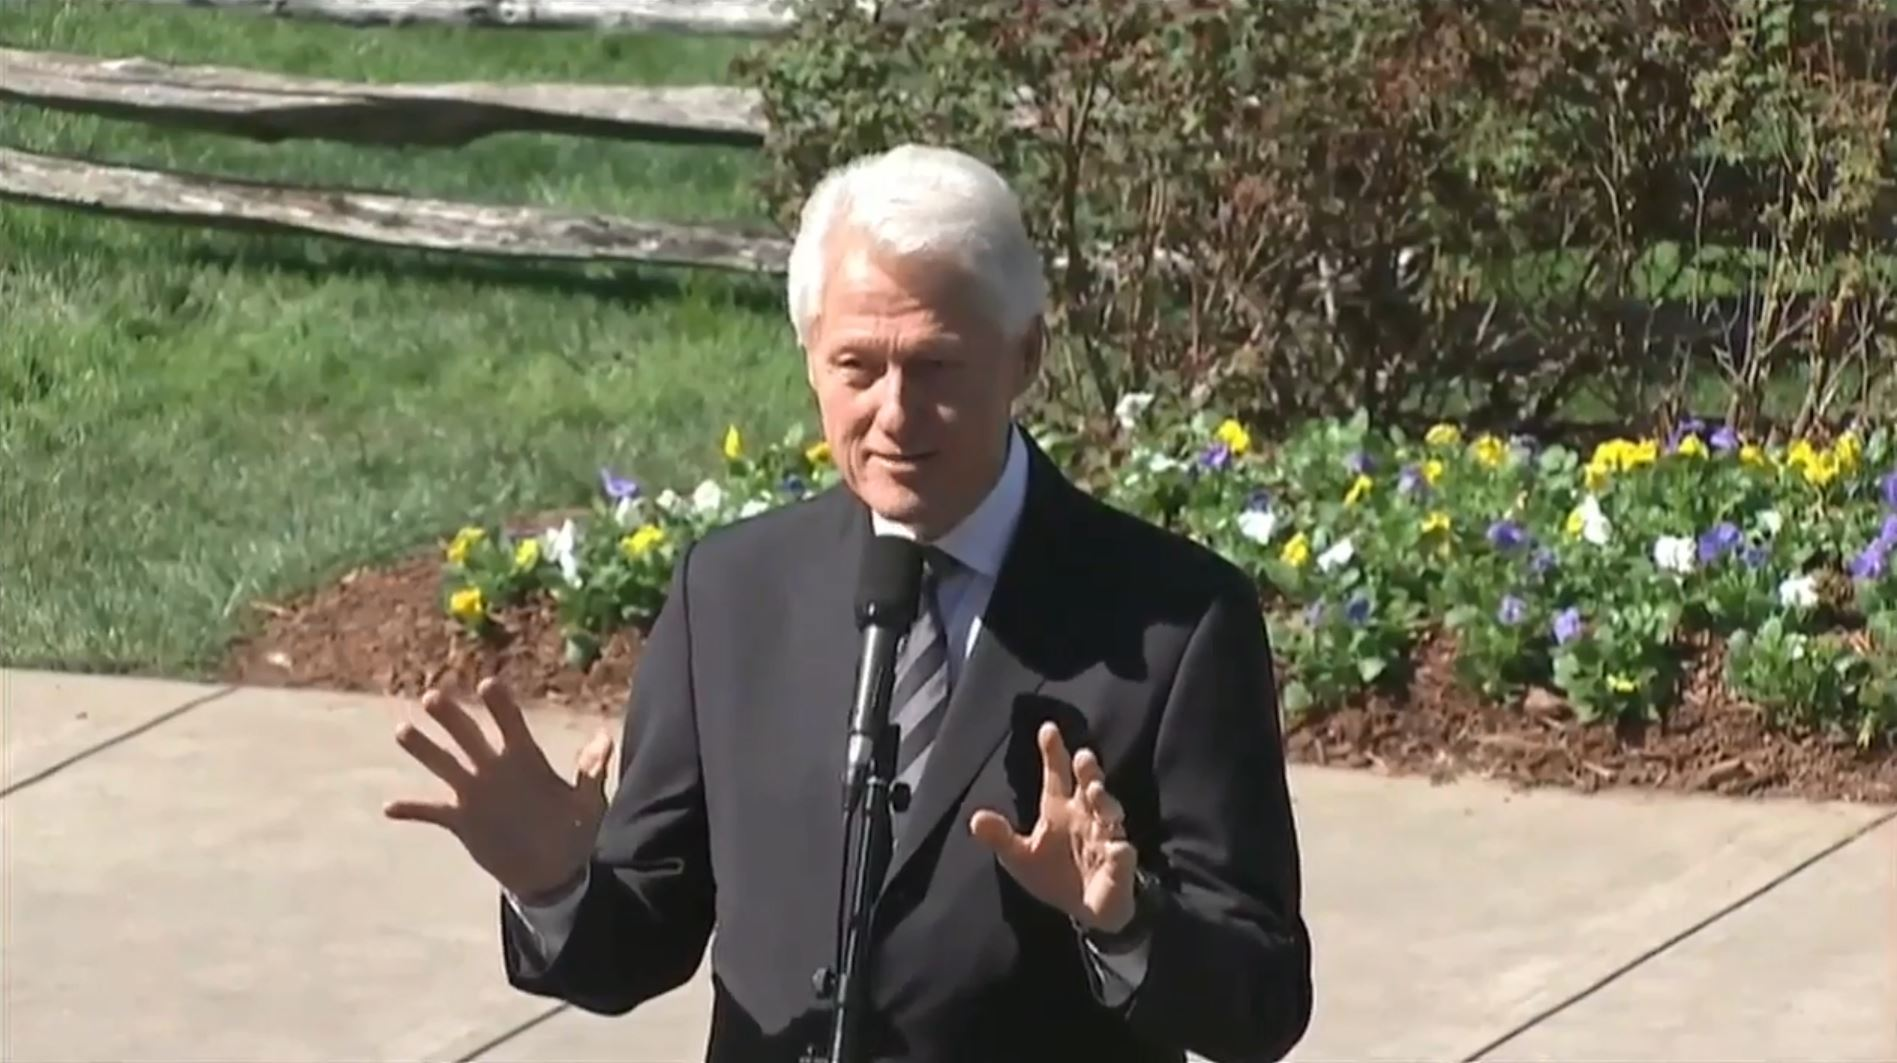 Former President Bill Clinton speaks after paying respects at Billy Graham's casket on Feb. 27, 2018, in Charlotte, North Carolina. (Photo credit: WSOC)